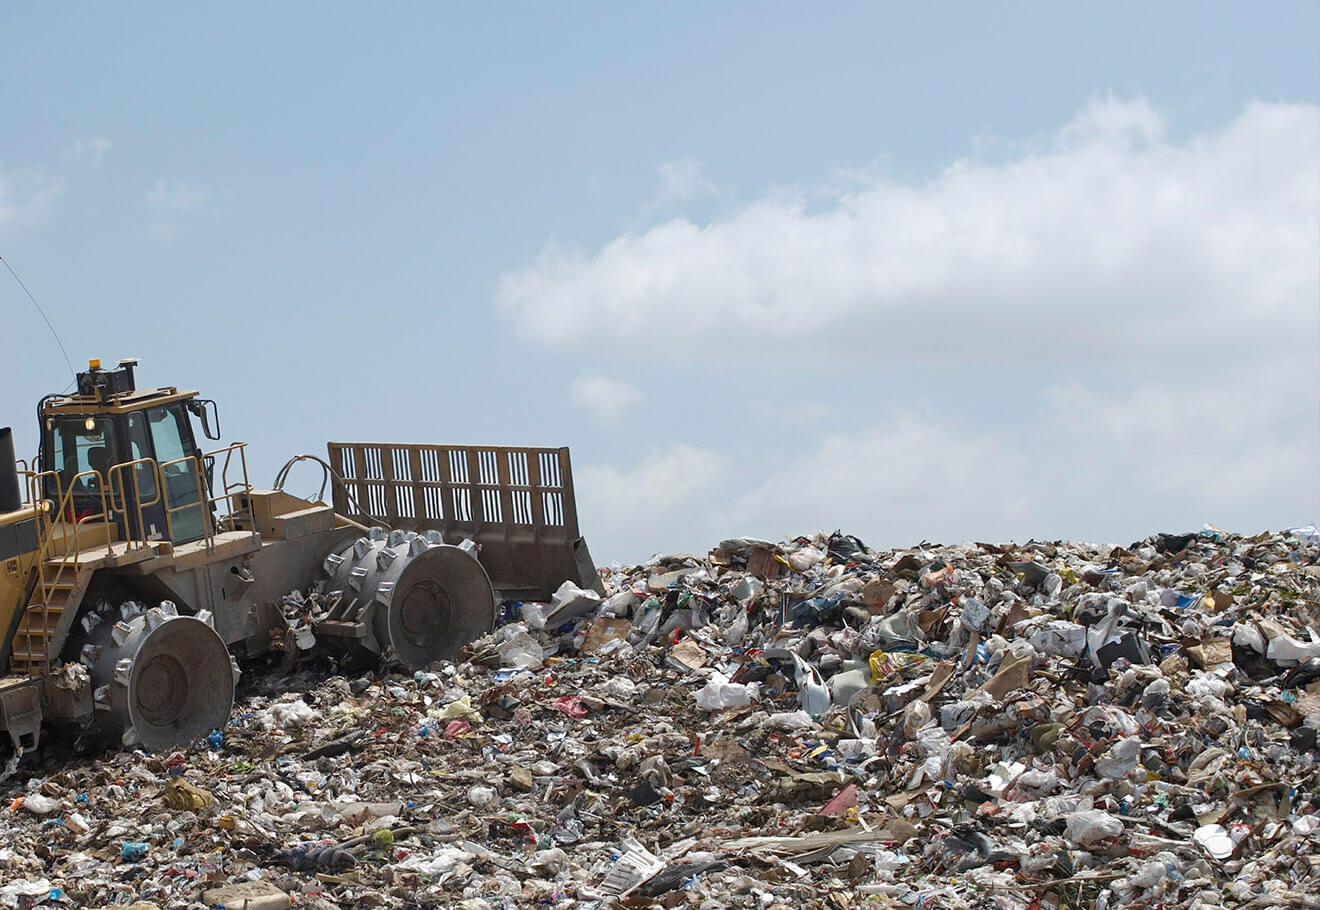 Landfill overflowing with plastic waste